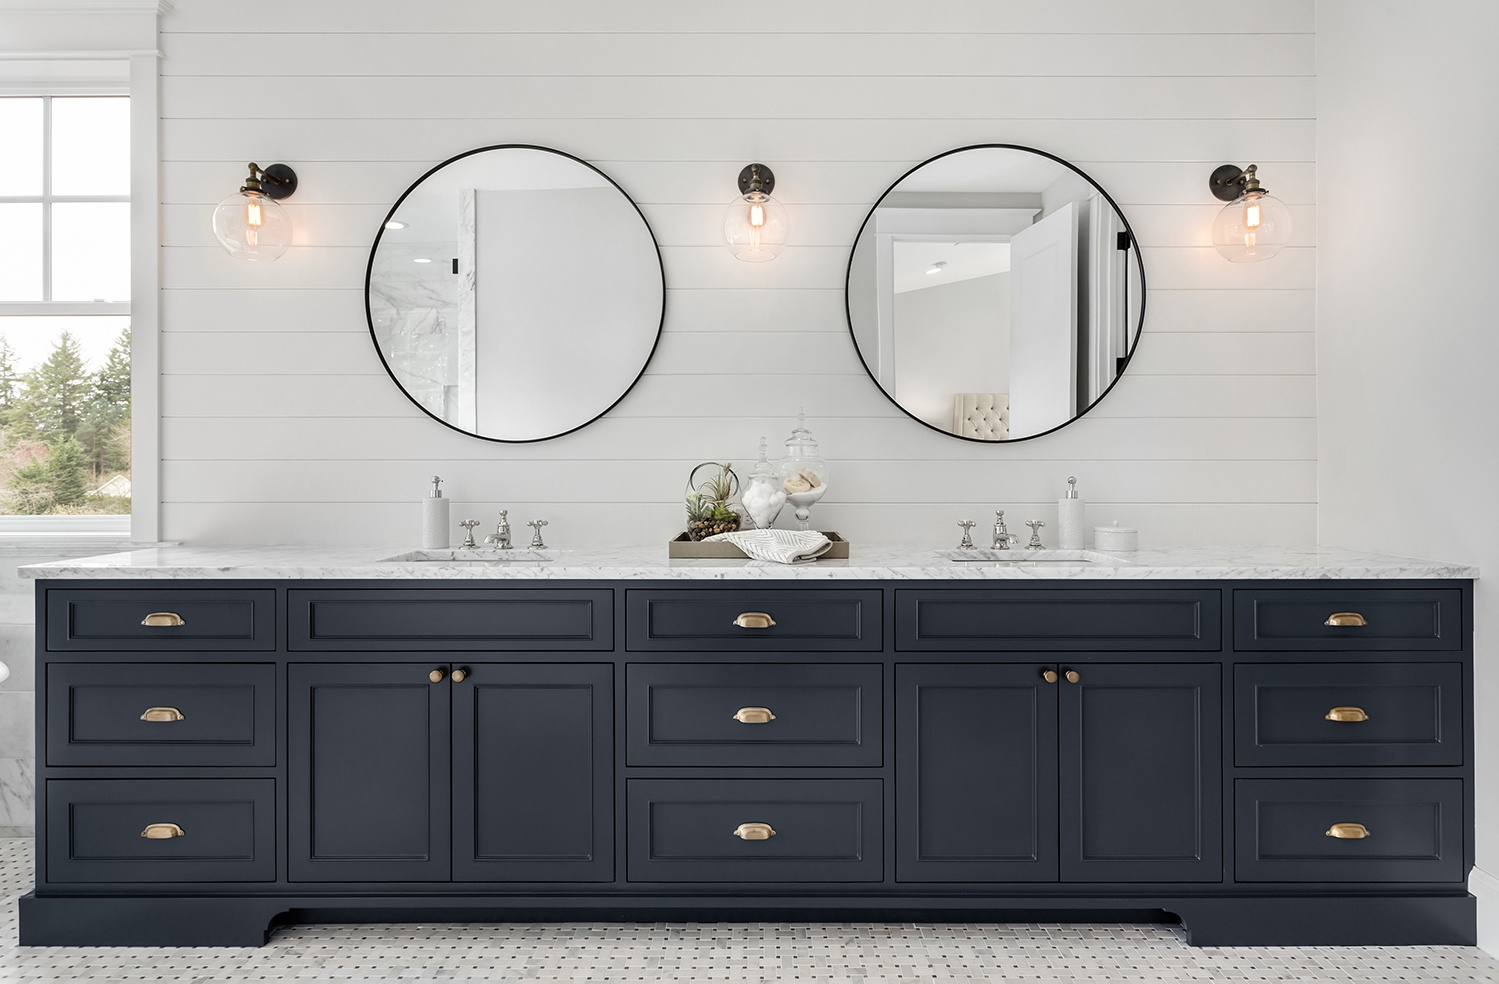 Charmant Use Our Cabinet Doors With Your DIY Project!